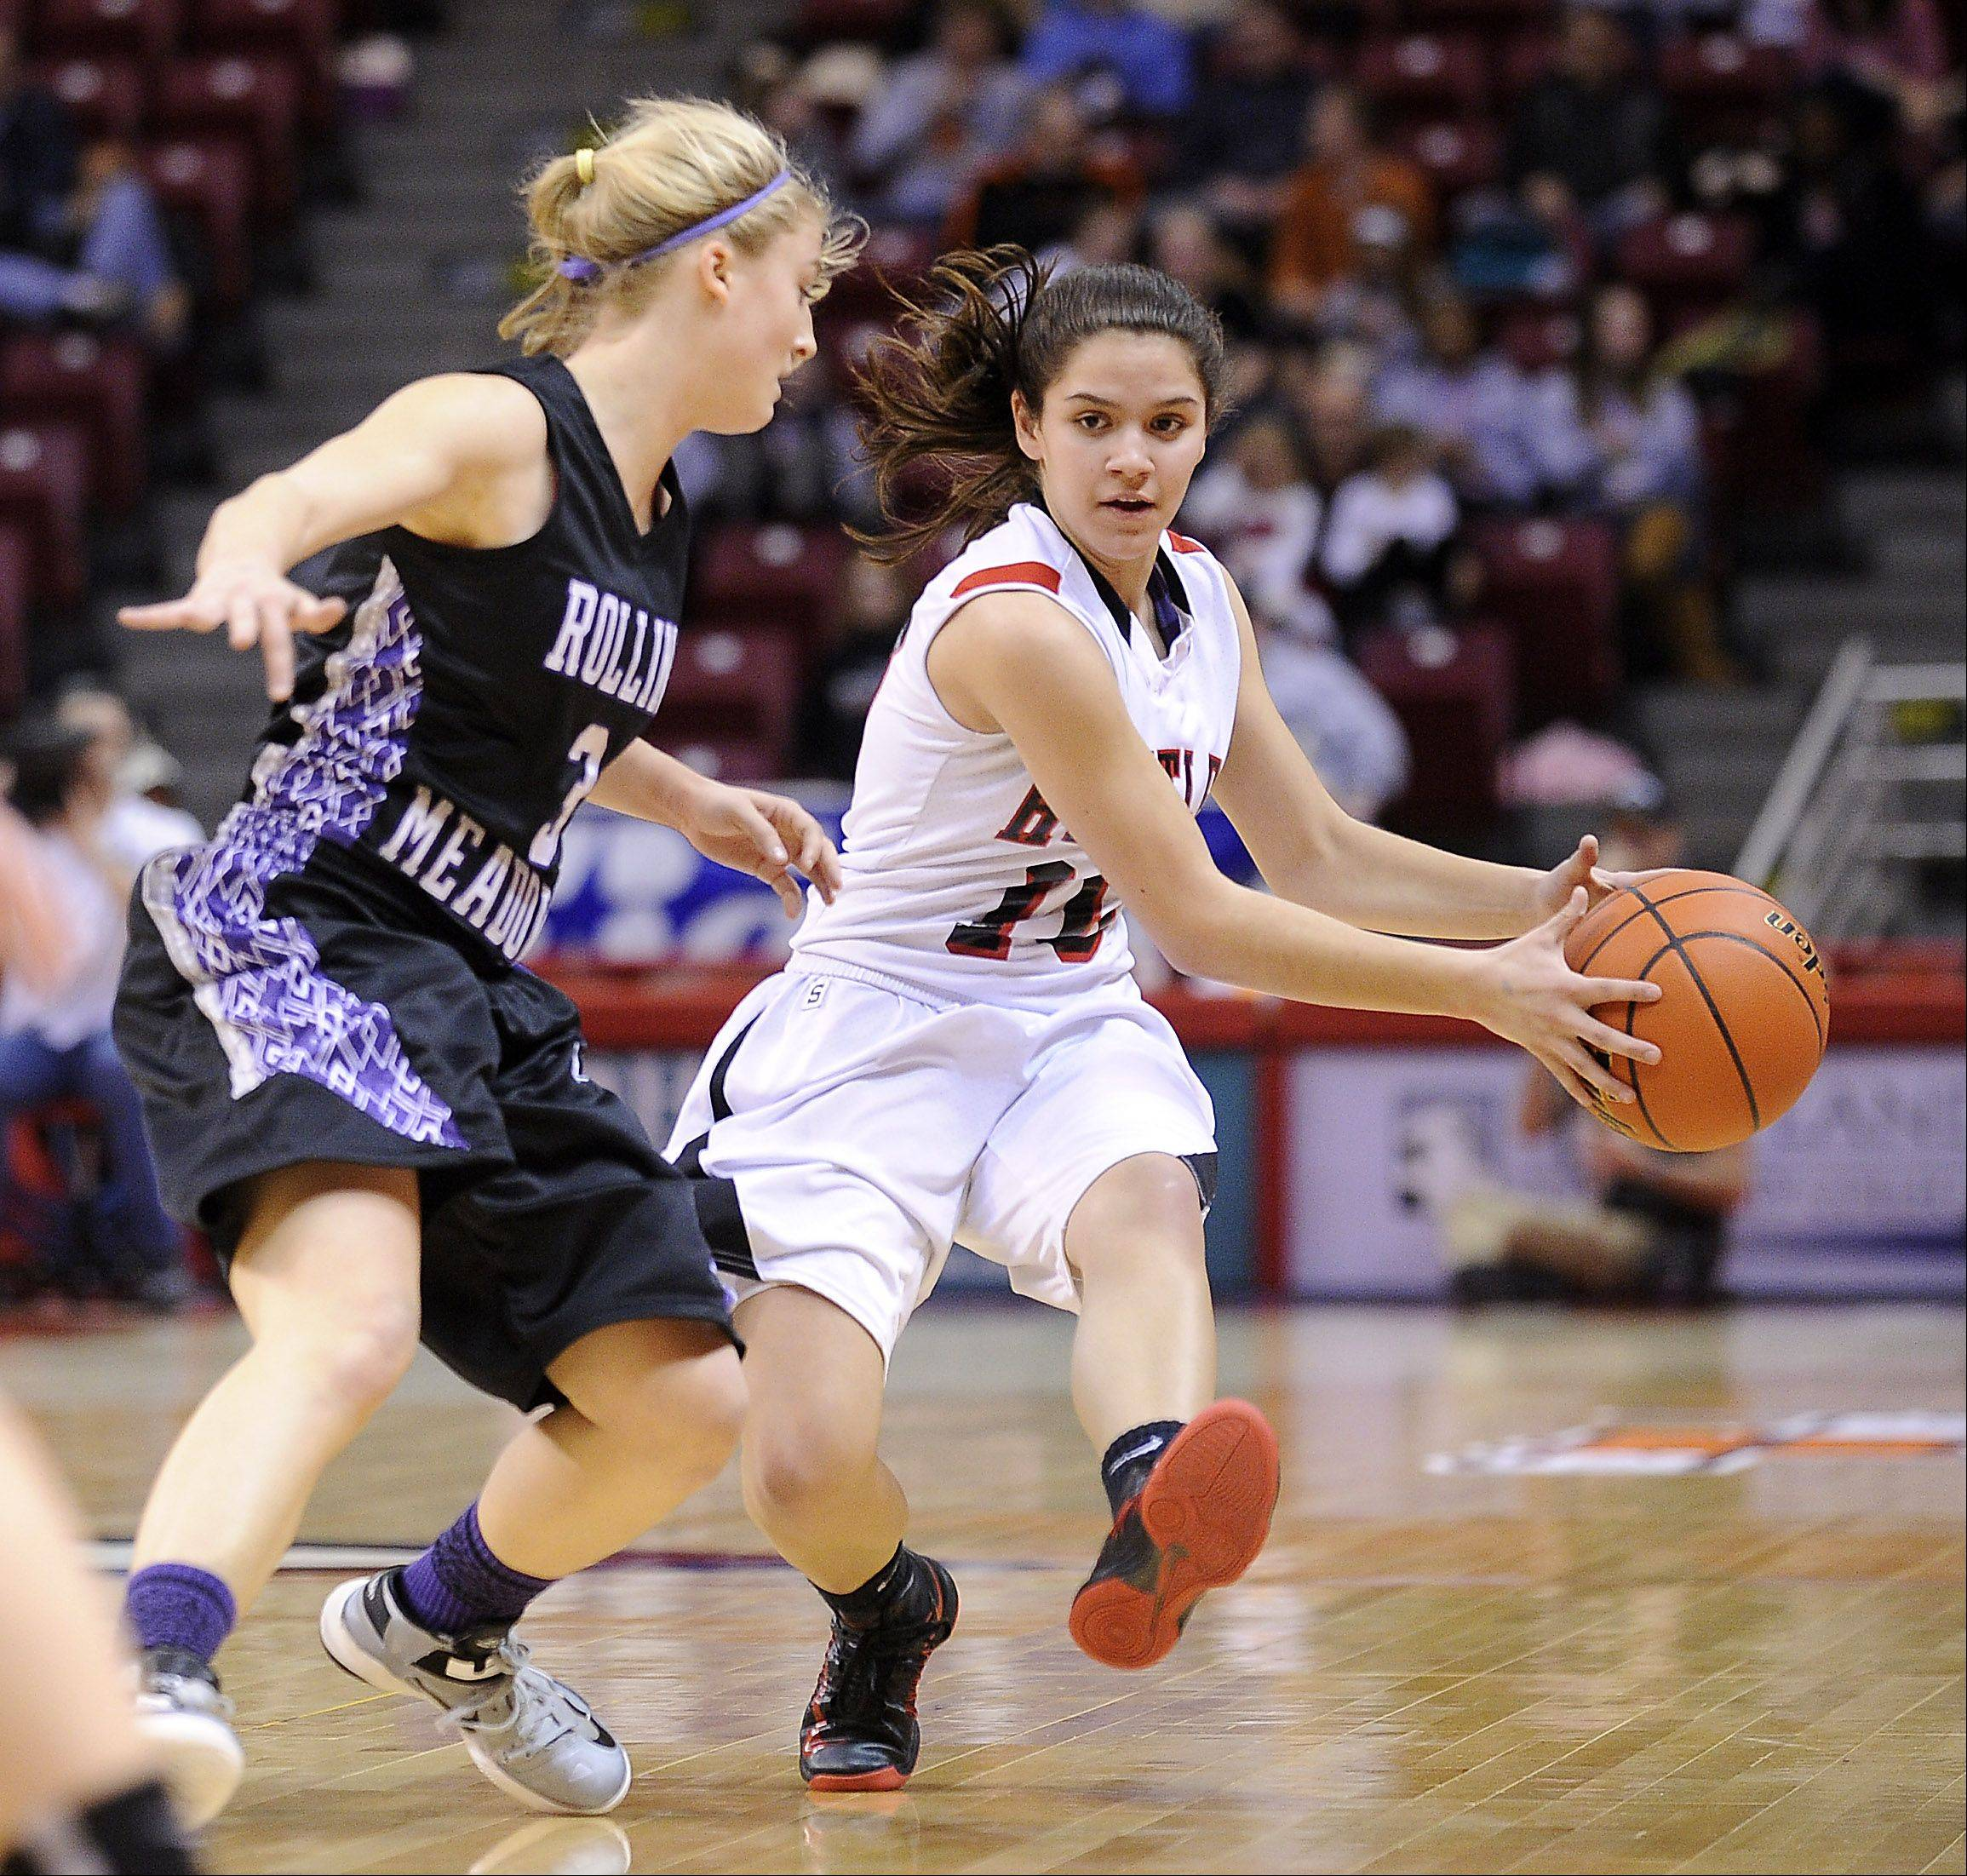 Huntley's Kayla Barreto puts on the brakes before passing the ballwhile under pressure from Rolling Meadows's Jackie Kemph.